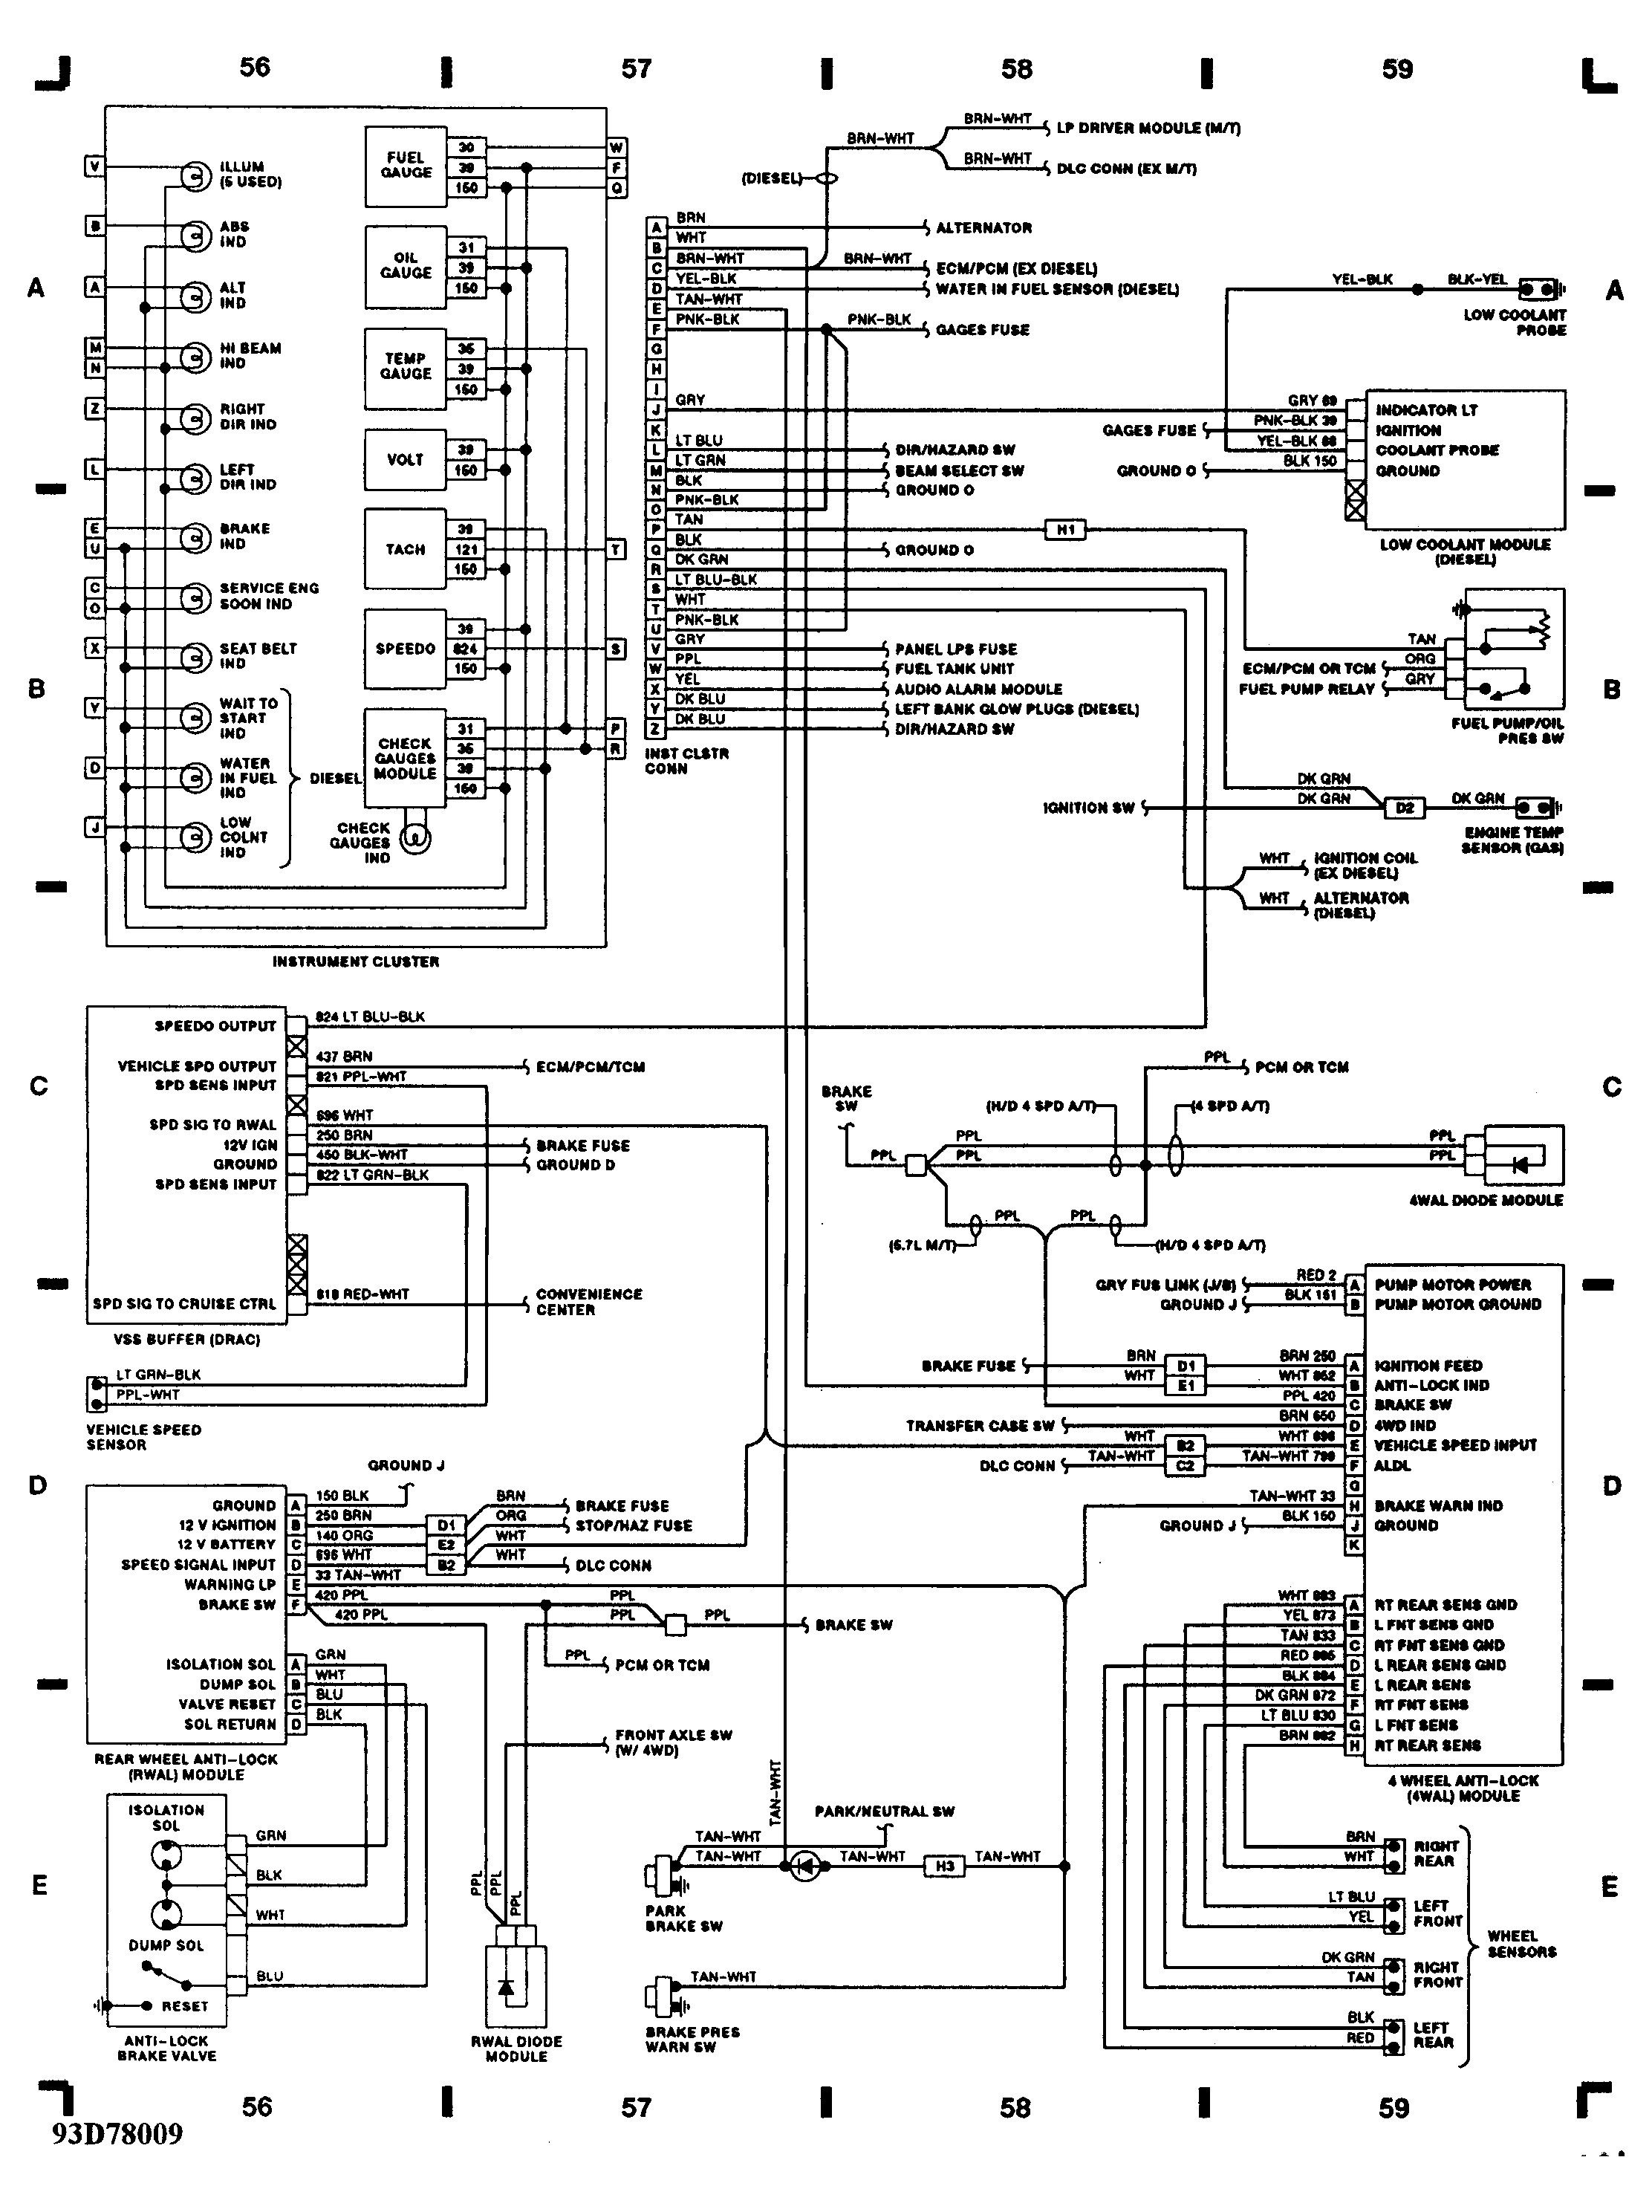 Obd2b Engine Harness Diagram 5 7 Vortec Wiring Harness Diagram ...